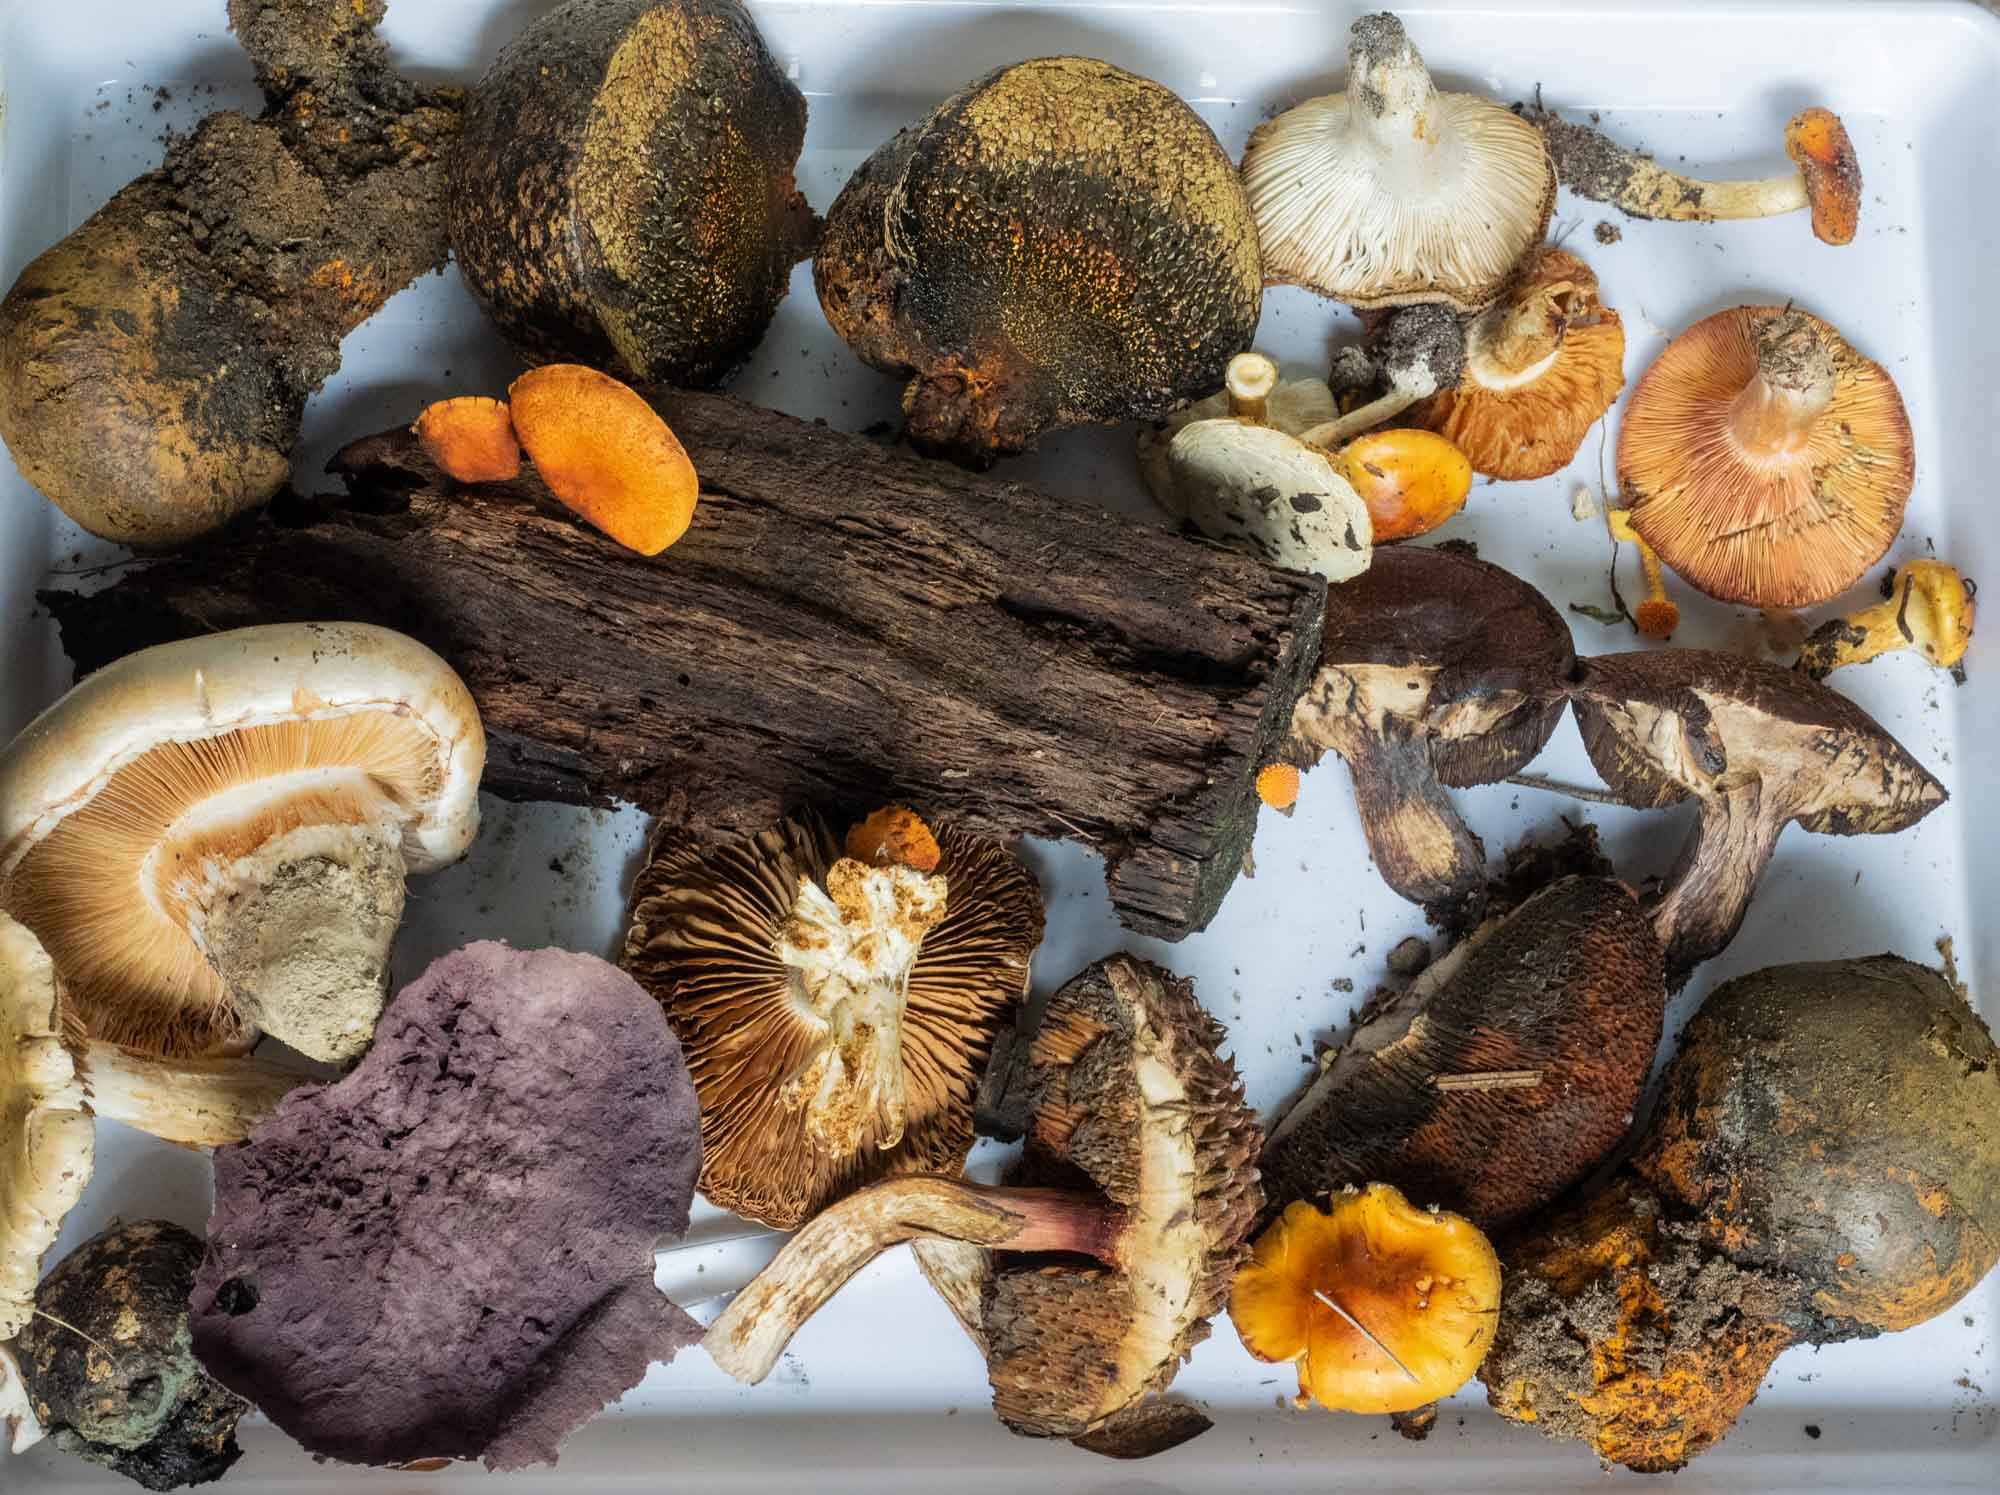 Some of the mushrooms and other fungi brought along to the Workshop